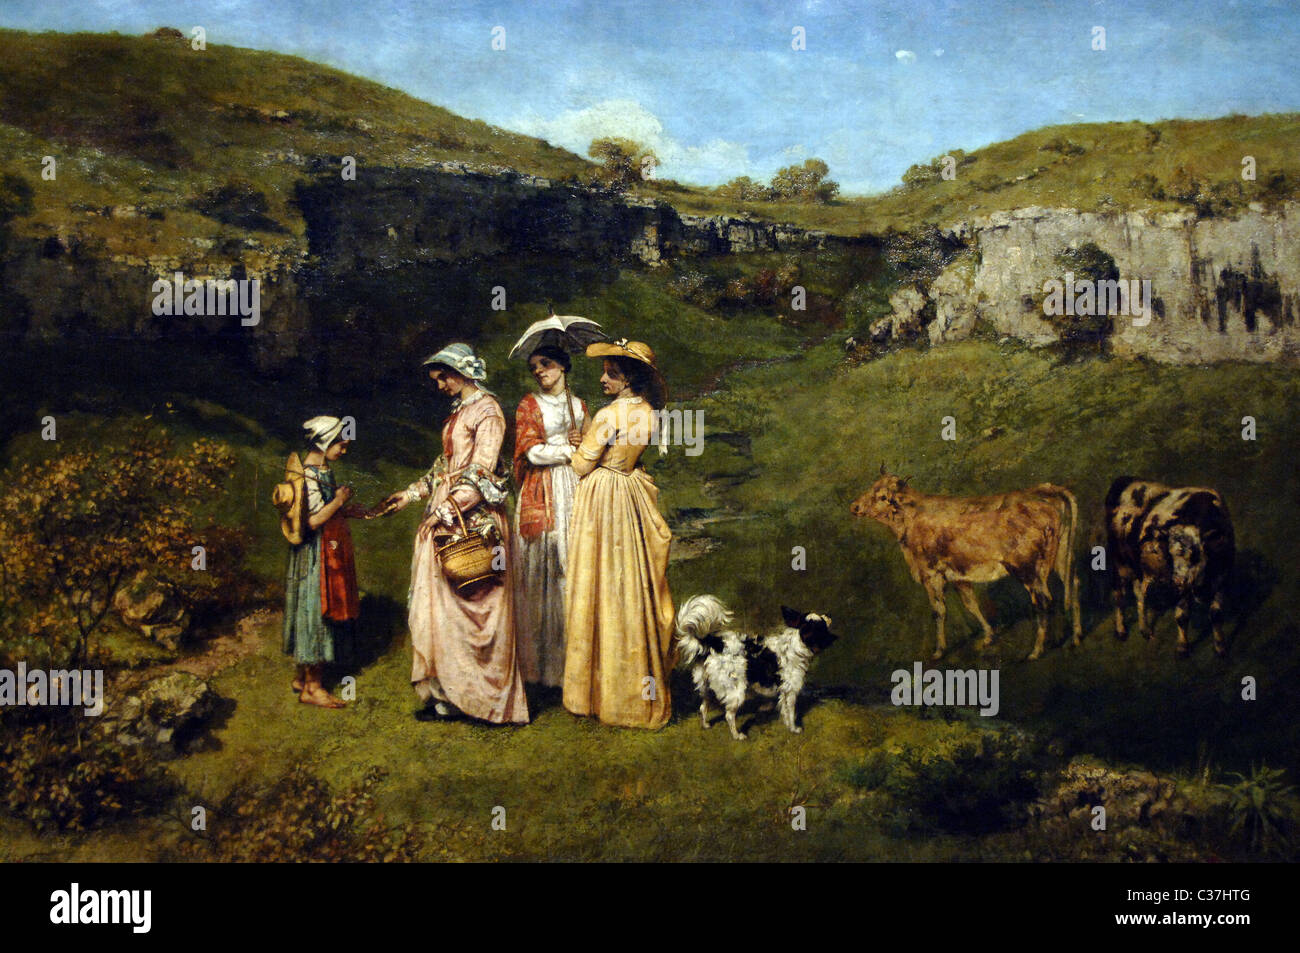 Gustave Courbet (1819-1877). French painter. Realist movement. Young ladies of the village, 1851-1852. - Stock Image